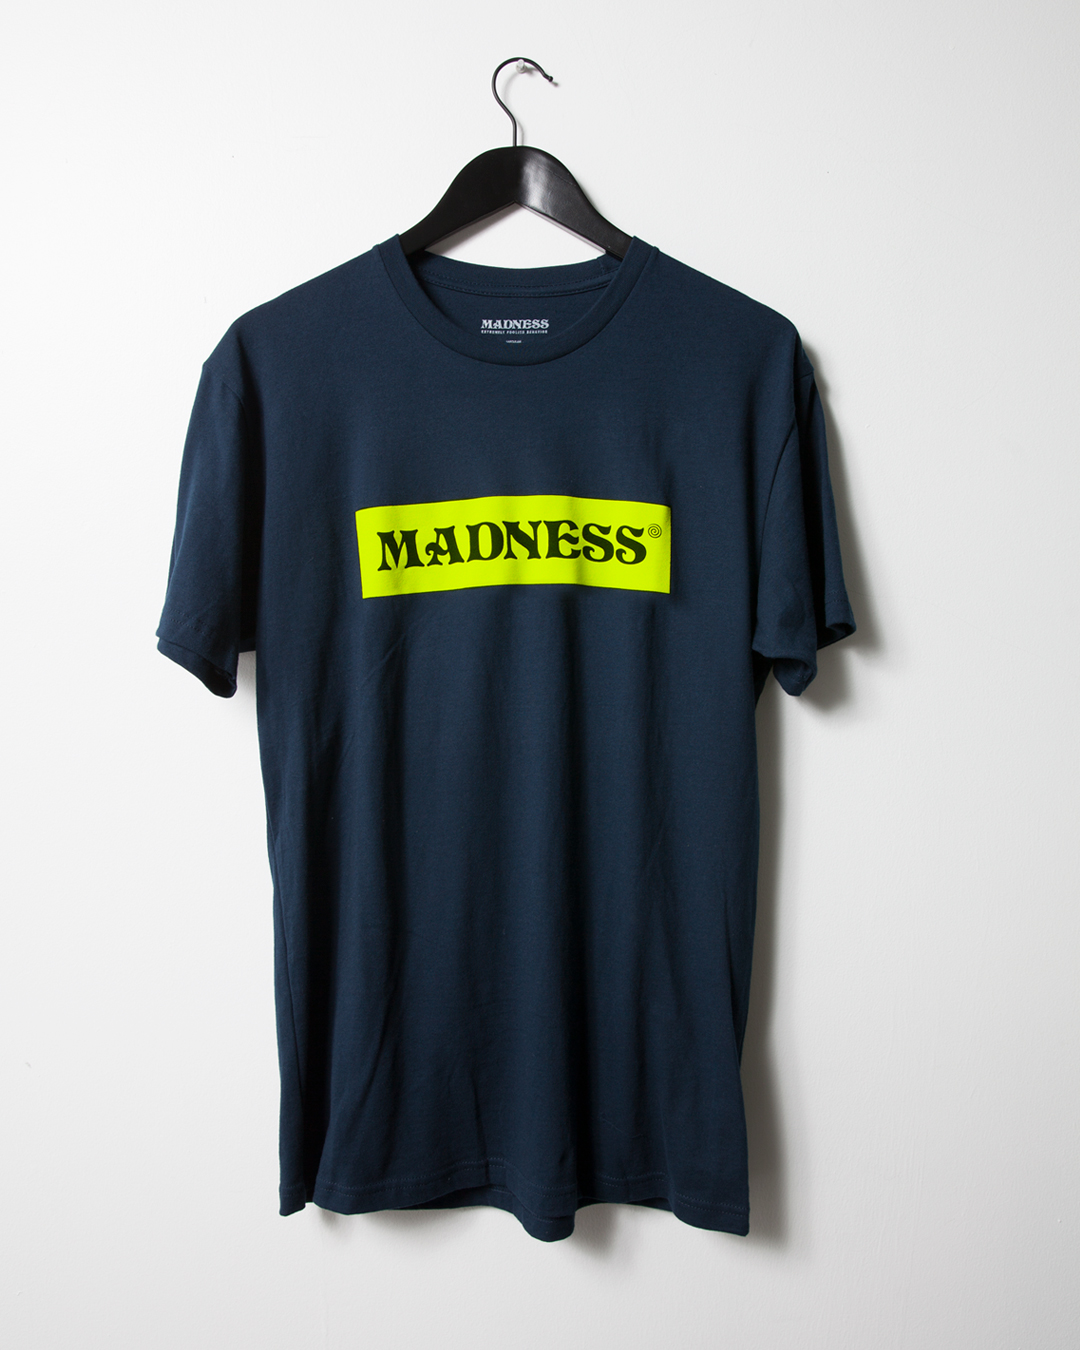 madness-skateboards-BAR-NAVY-FRONT-1350.jpg